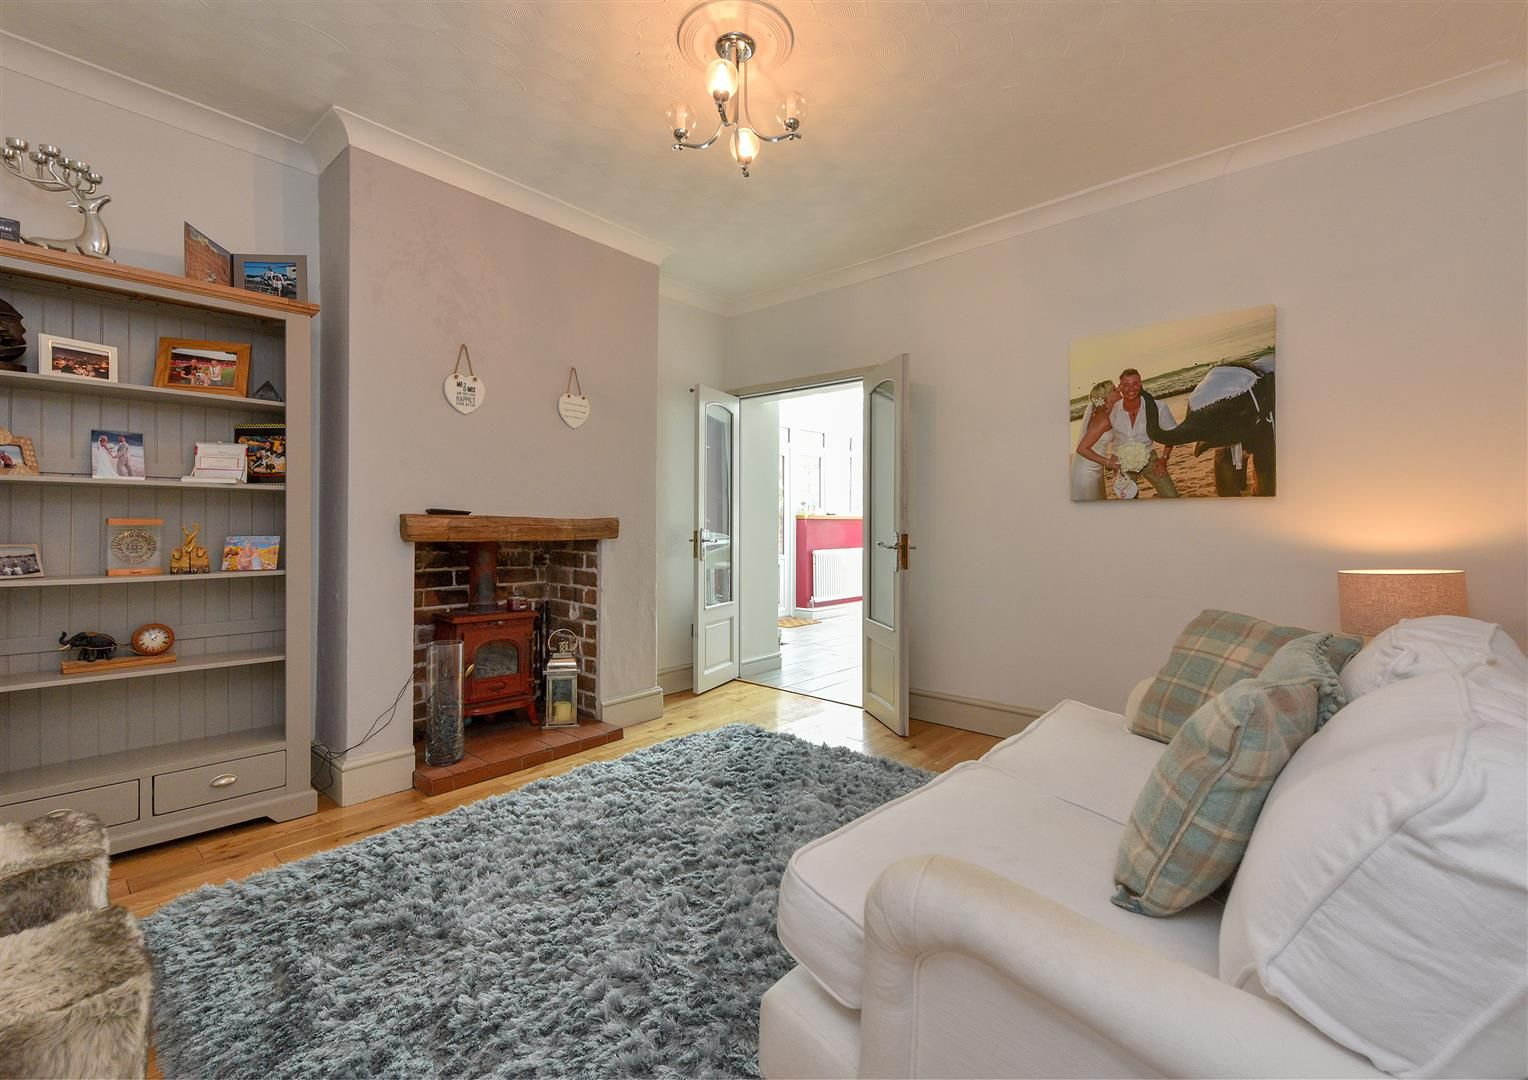 4 bed detached for sale in Swindon  - Property Image 11